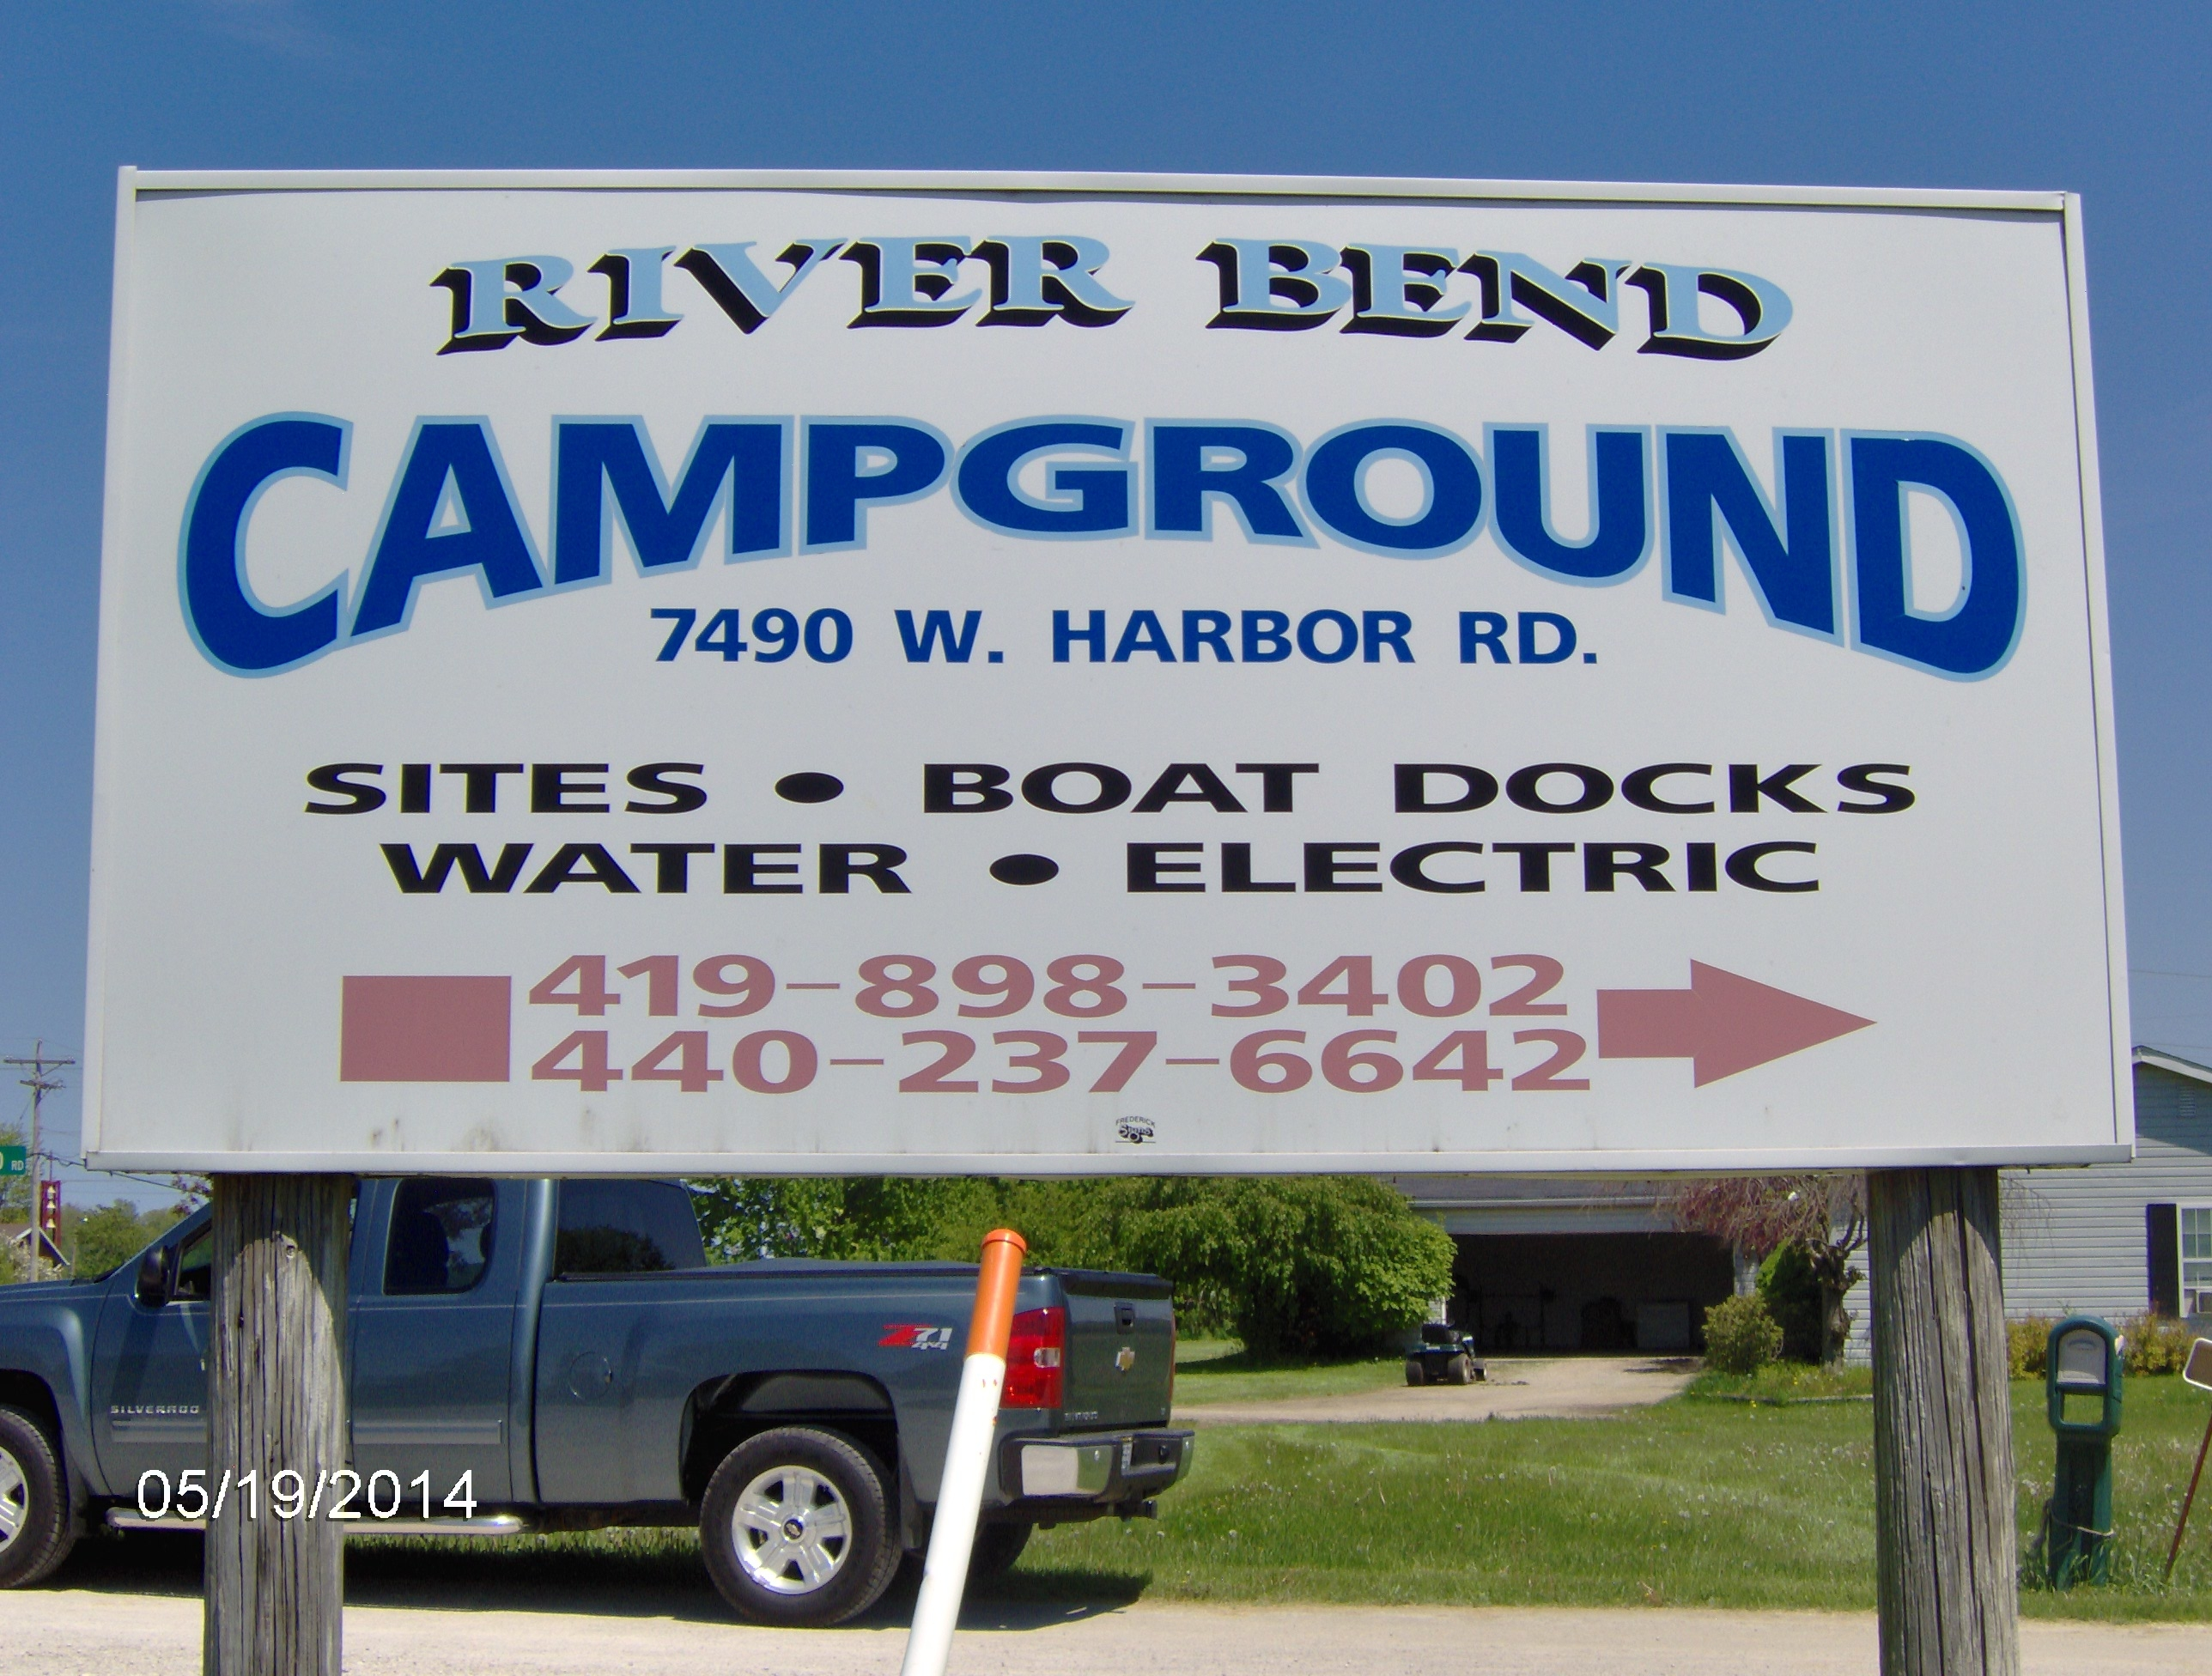 Riverbend Campground LLC Port Clinton Ohio OH